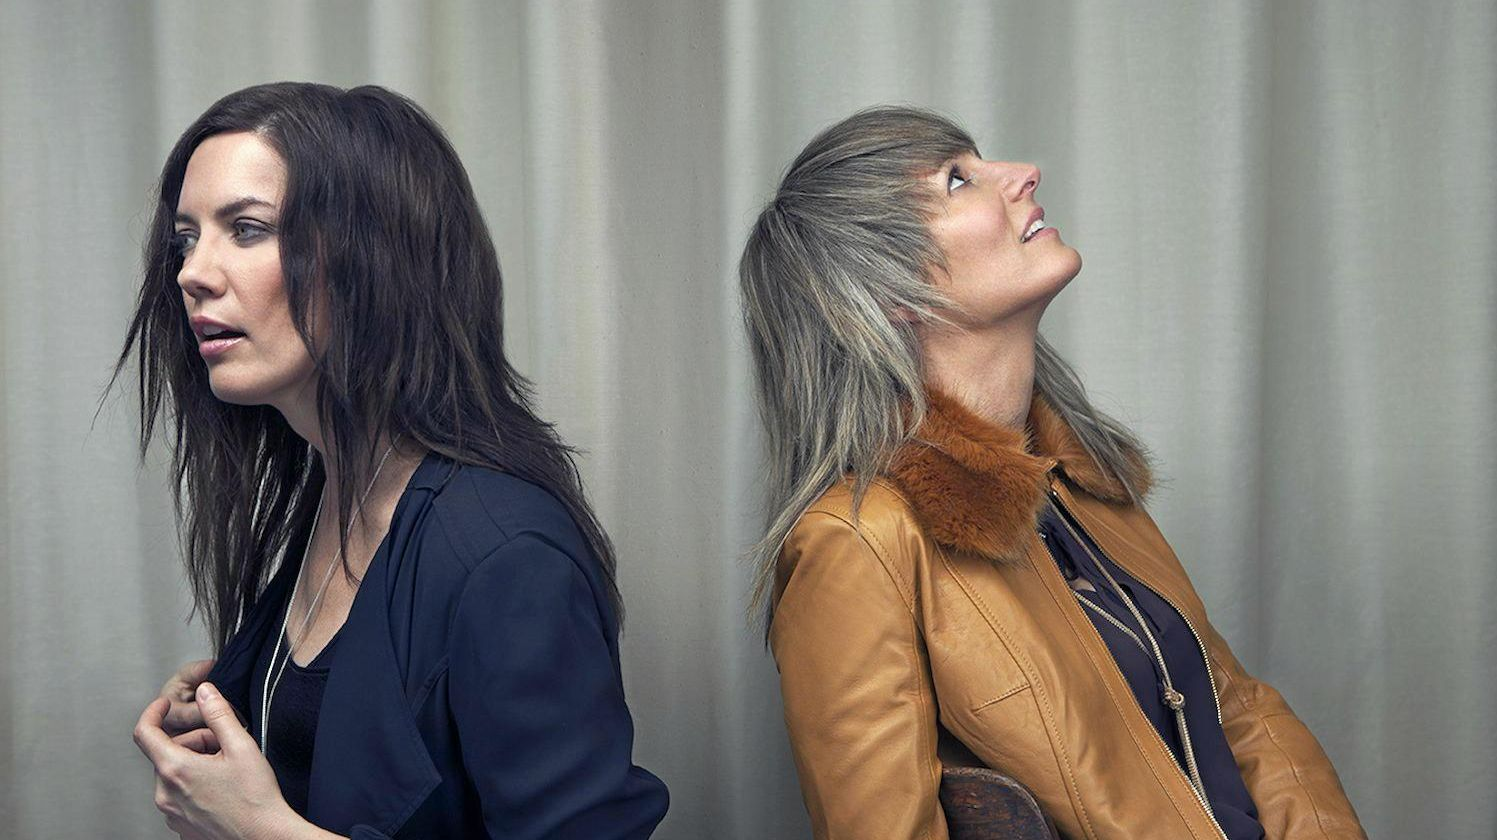 IN HARMONY: Canadian multi-instrumentalists Madison Violet bring their harmonies to Rocky Creek Hall, Peranga and Felton as part of the Festival of Small Halls tour.